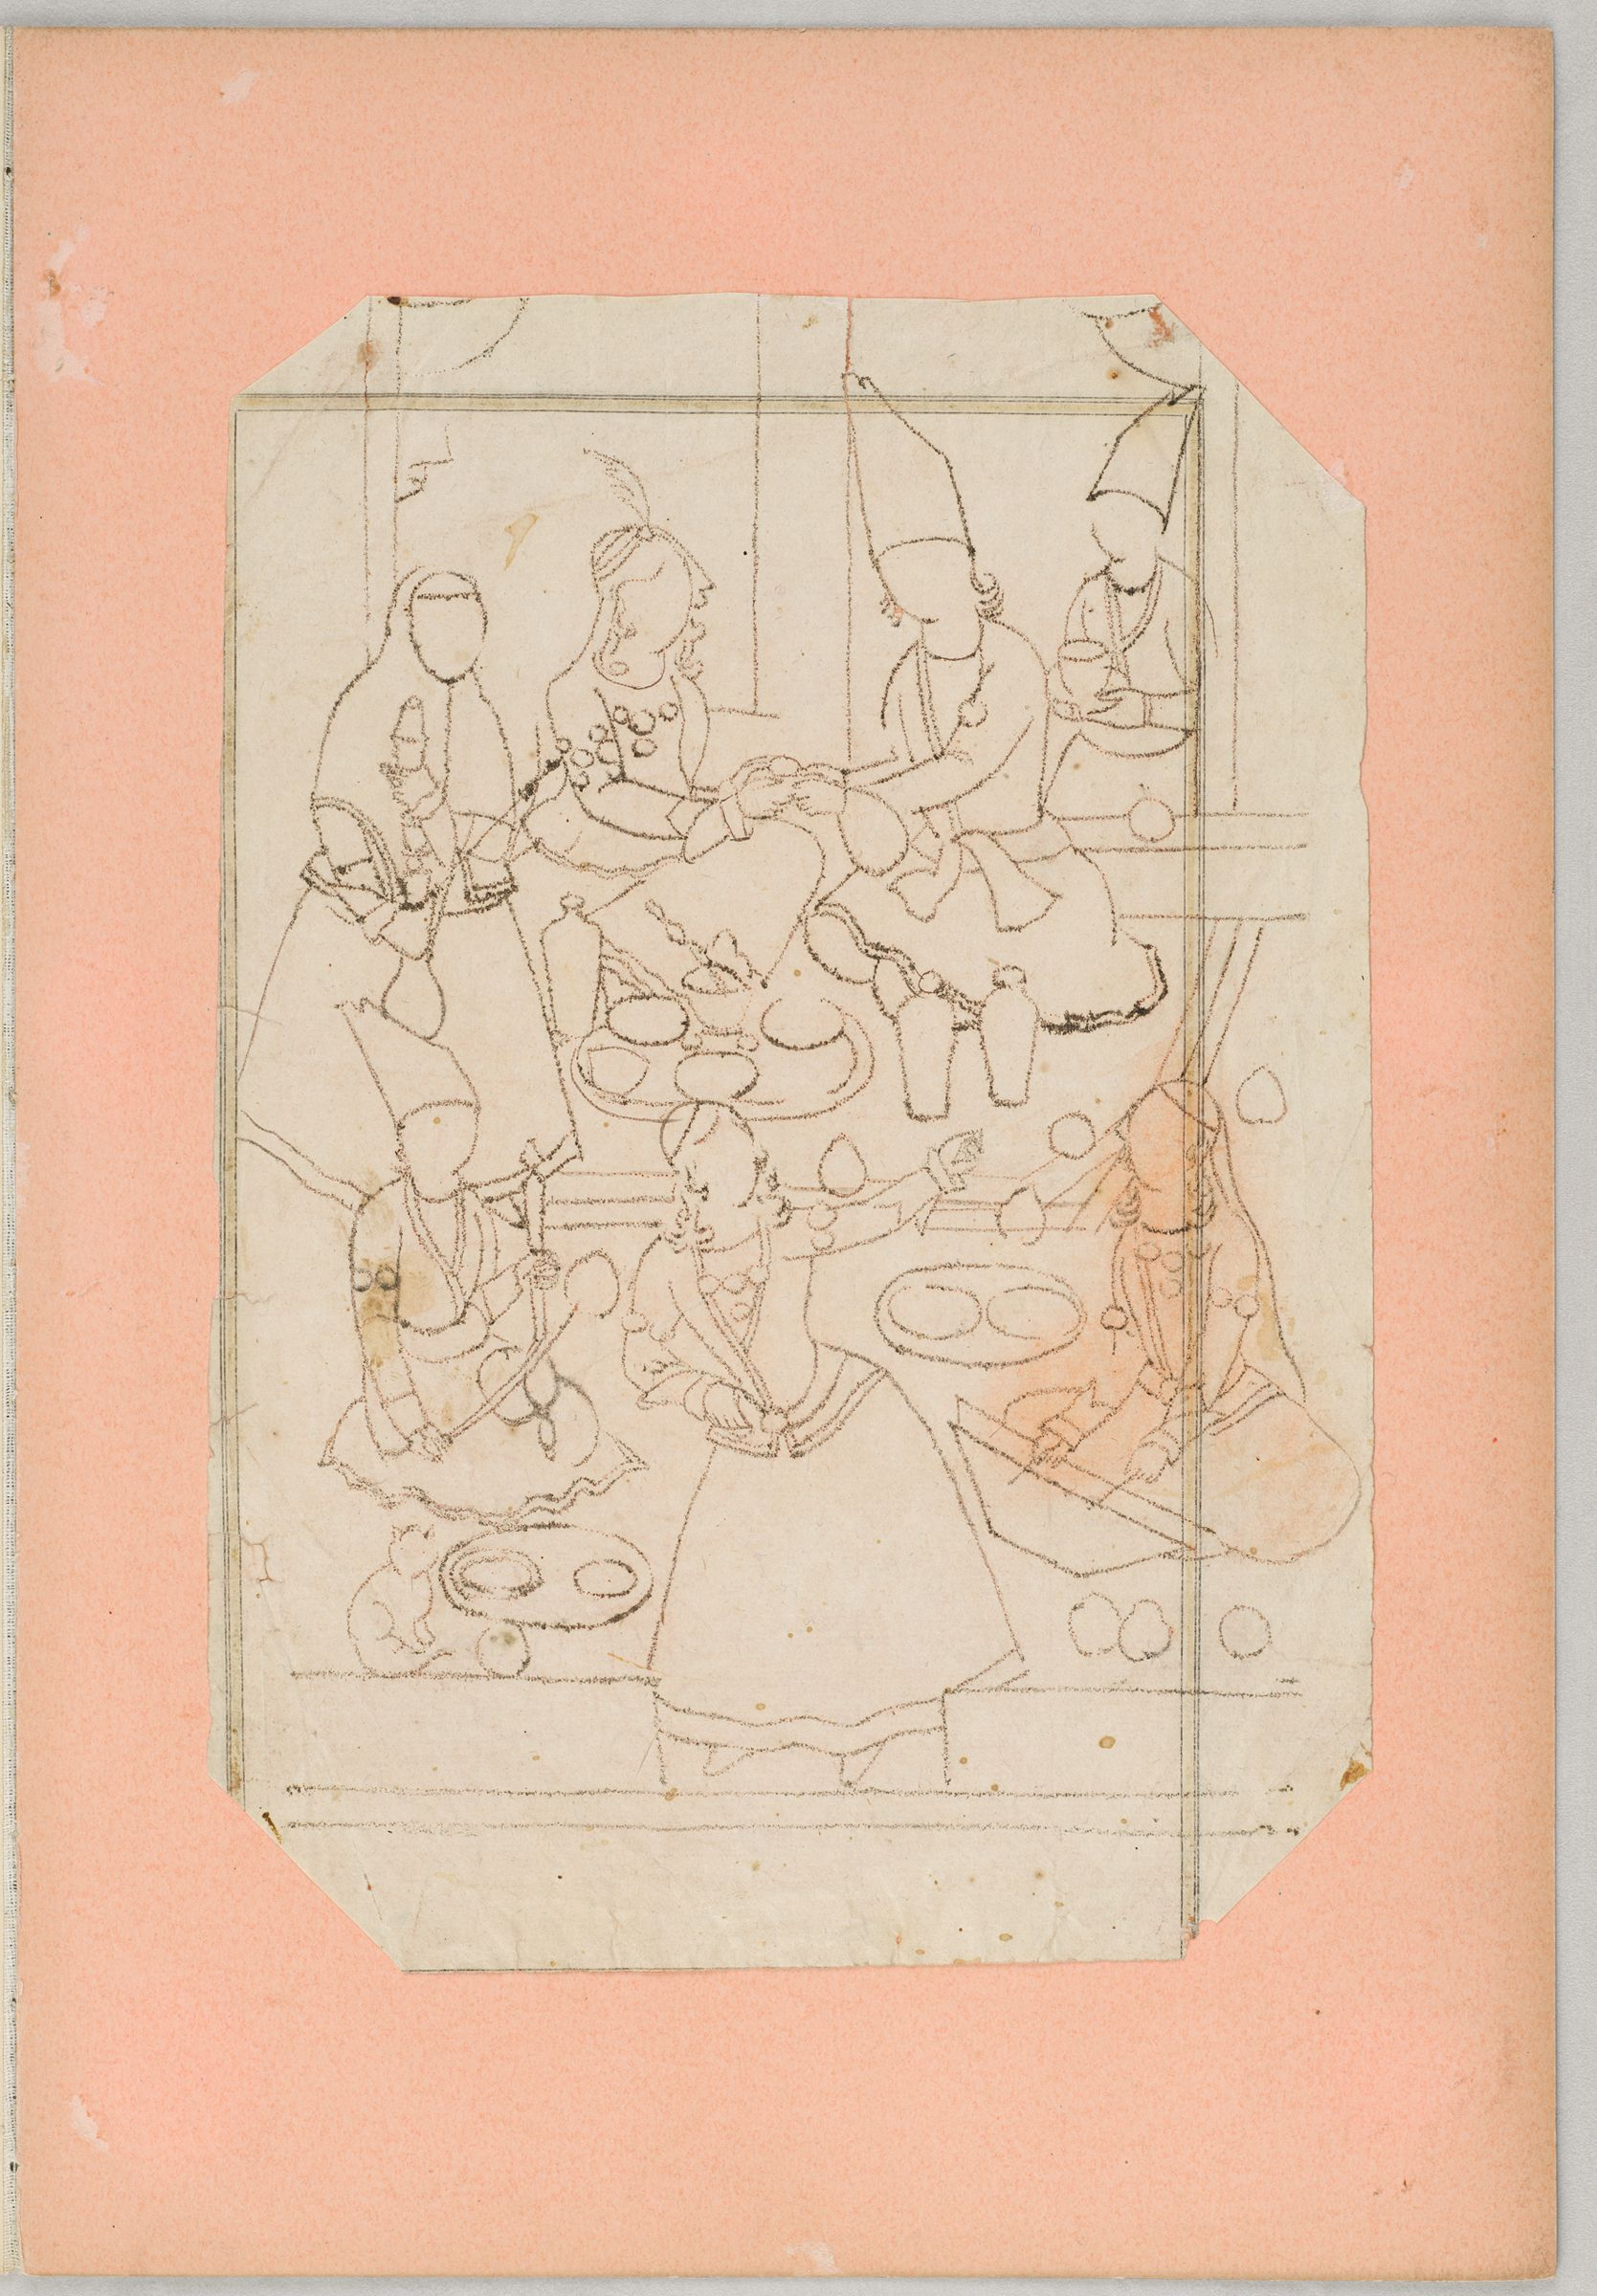 Folio 10 From An Album Of Artists' Drawings From Qajar Iran: Hero On Horseback Fighting A Dragon (Recto); Couple Entertained On A Terrace By Musicians And Dancers (Verso)